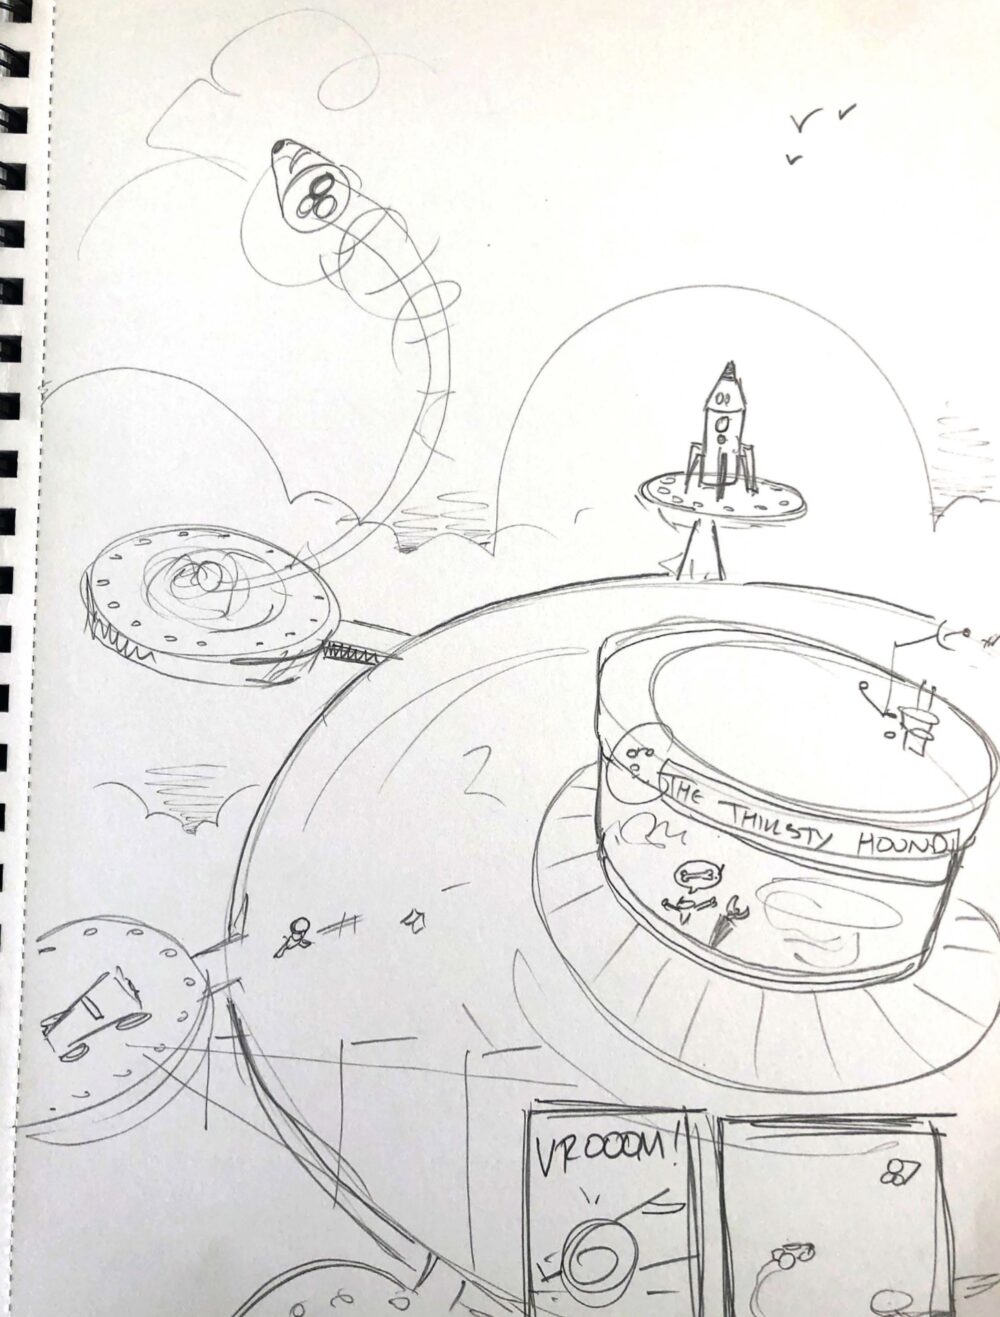 Sketchbook page of the pugs leaving The Thirsty Hound scene from Pugs in Space Issue 01.